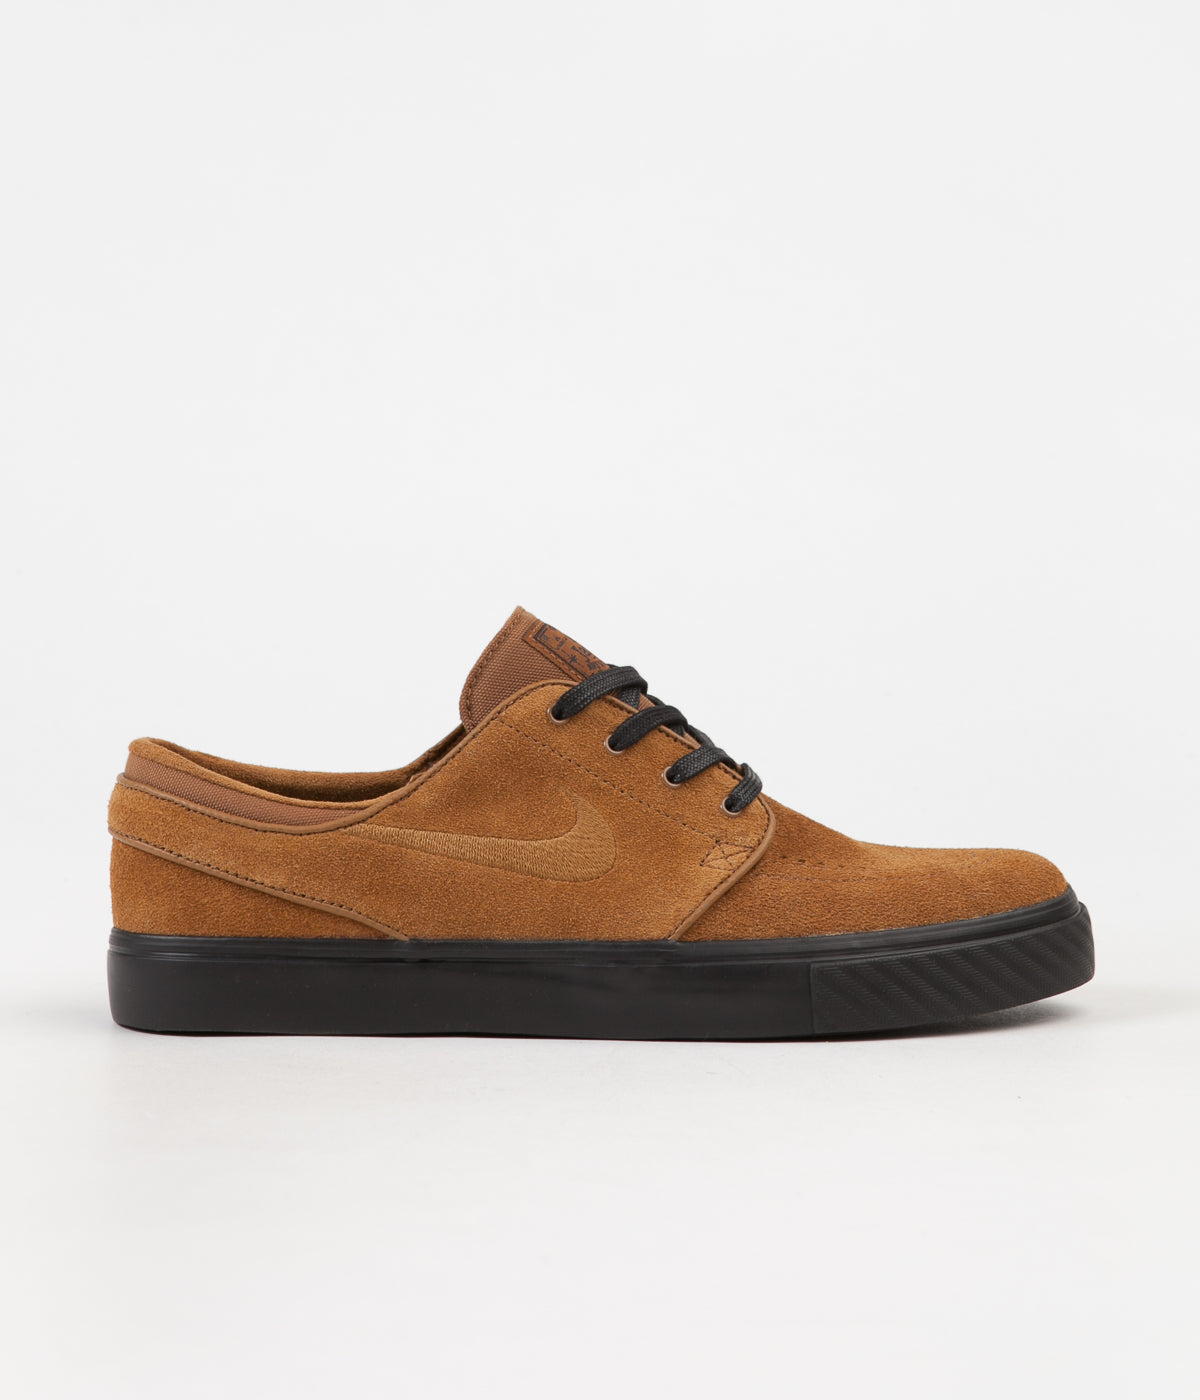 Nike SB Stefan Janoski Shoes - Light British Tan / Light British Tan - Black